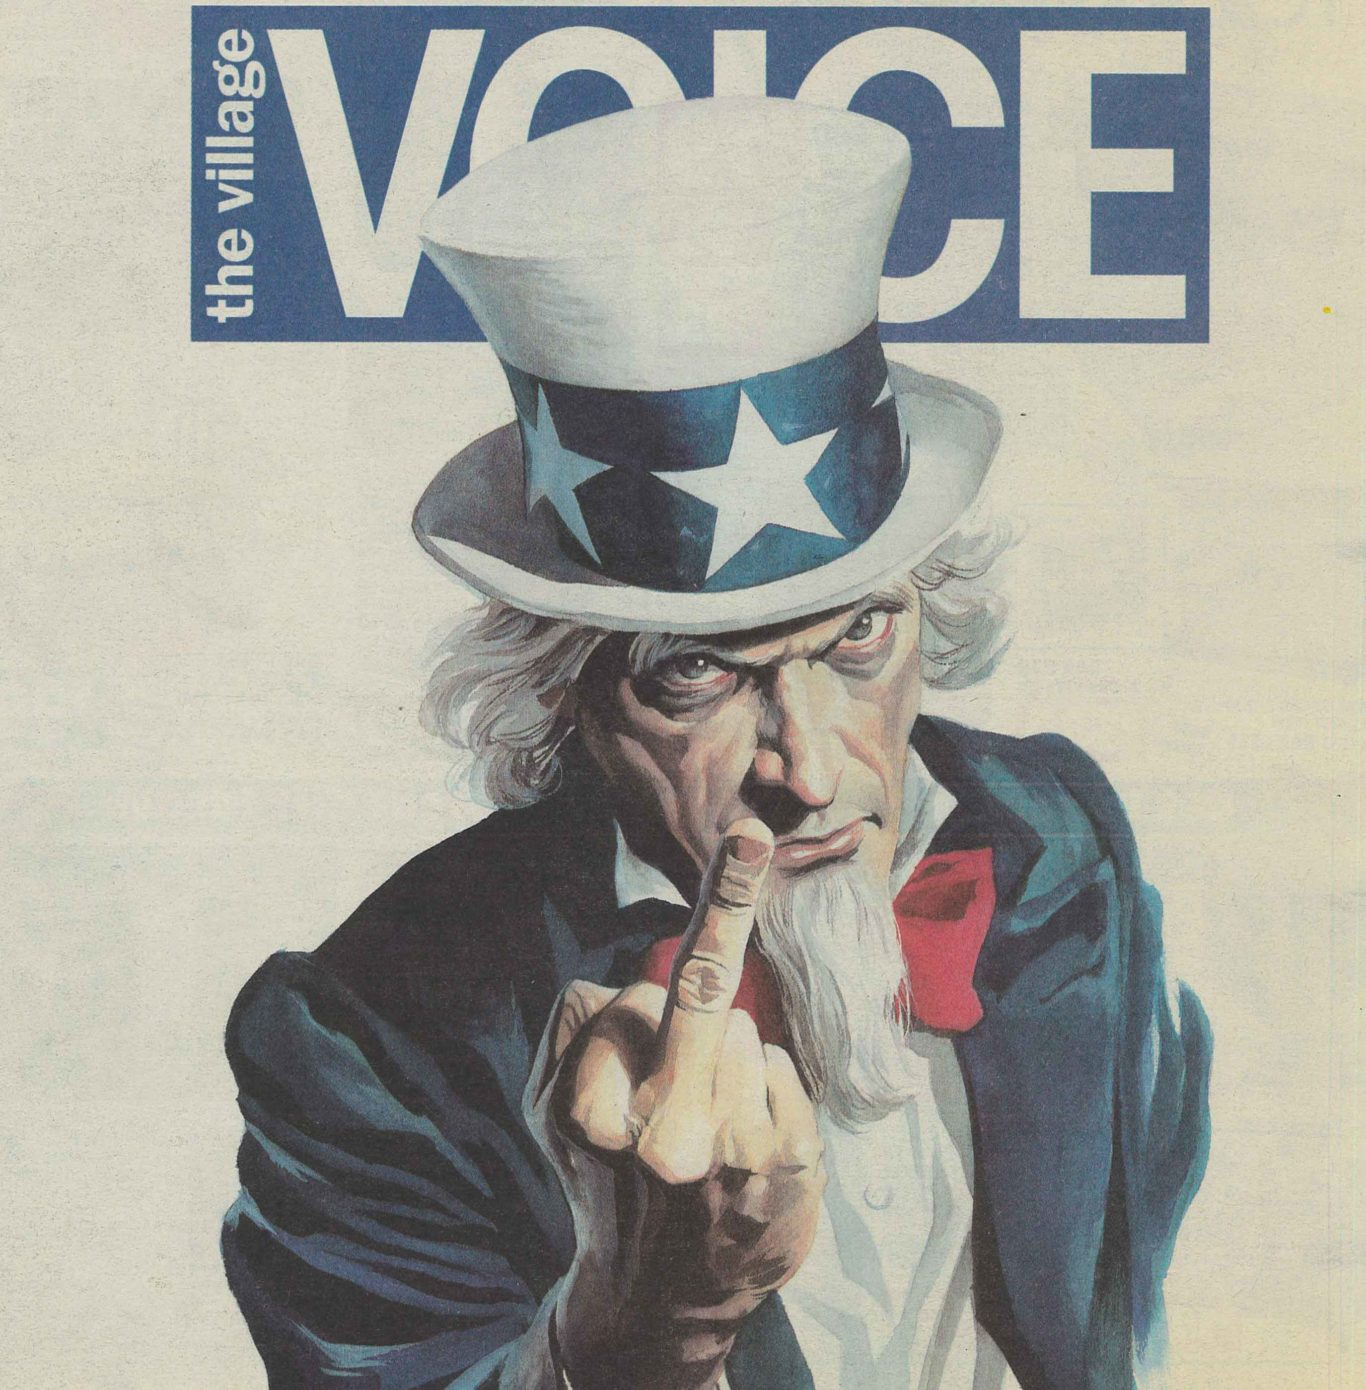 Uncle Sam by Alex Ross